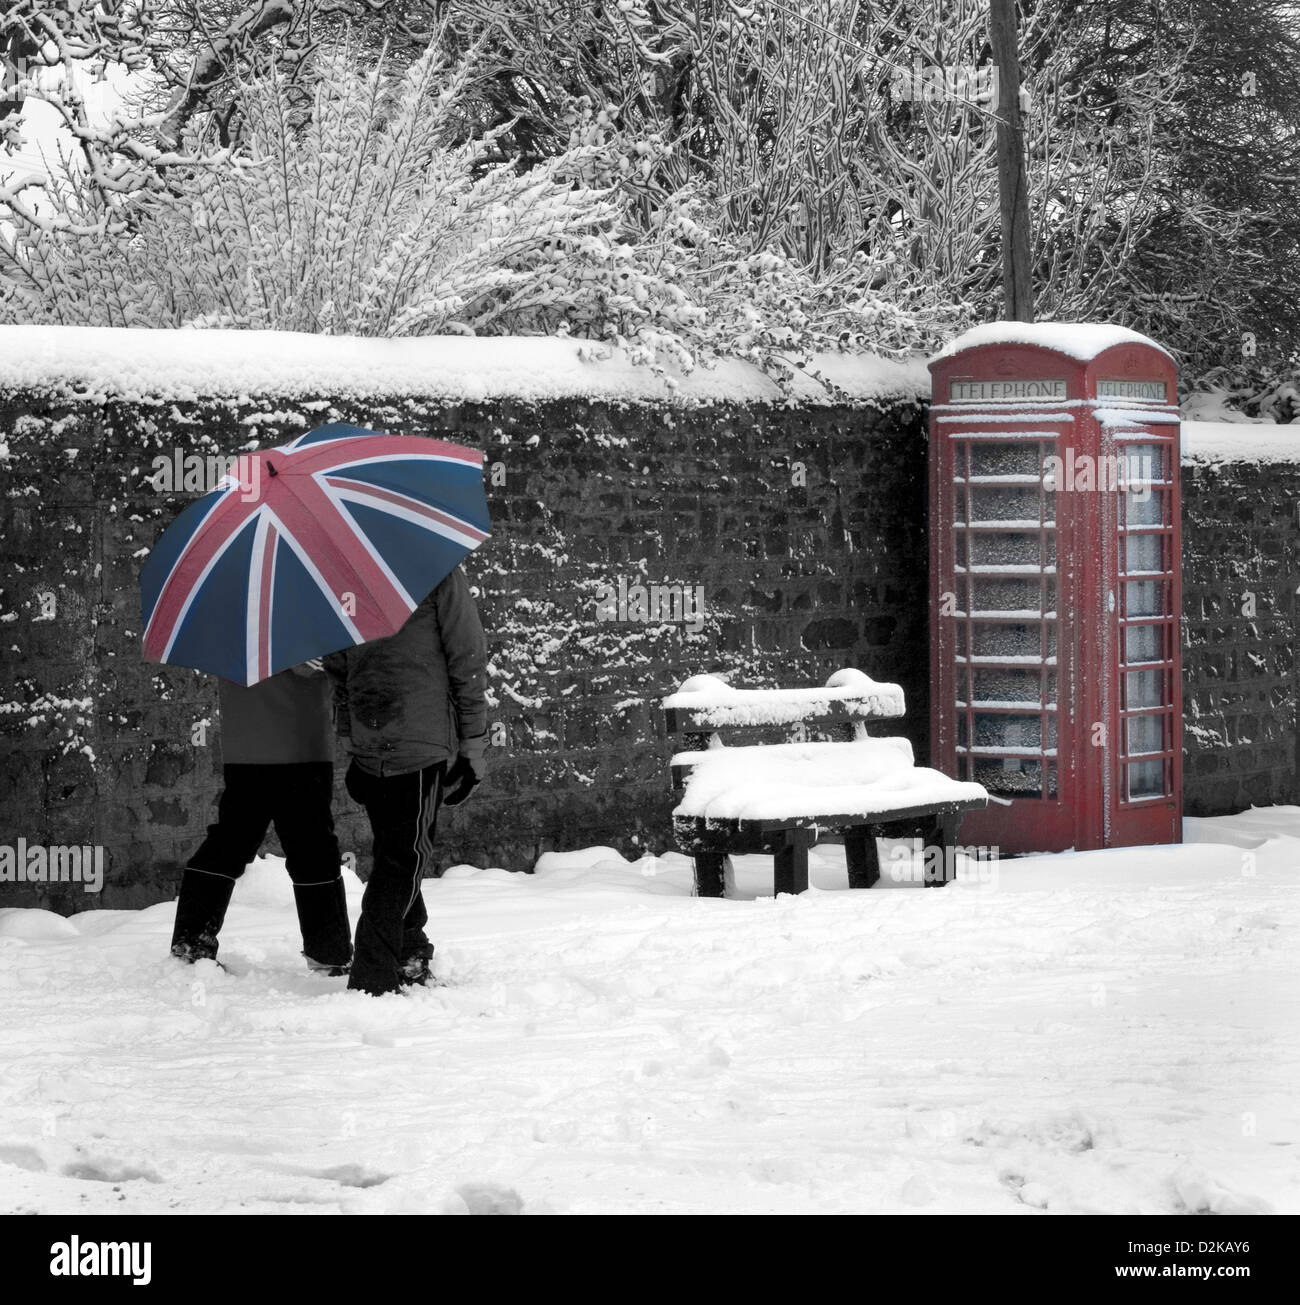 Uk , British, Red Telephone box with snow and union jack umberella. Scenic view of a British winter.Black and white - Stock Image